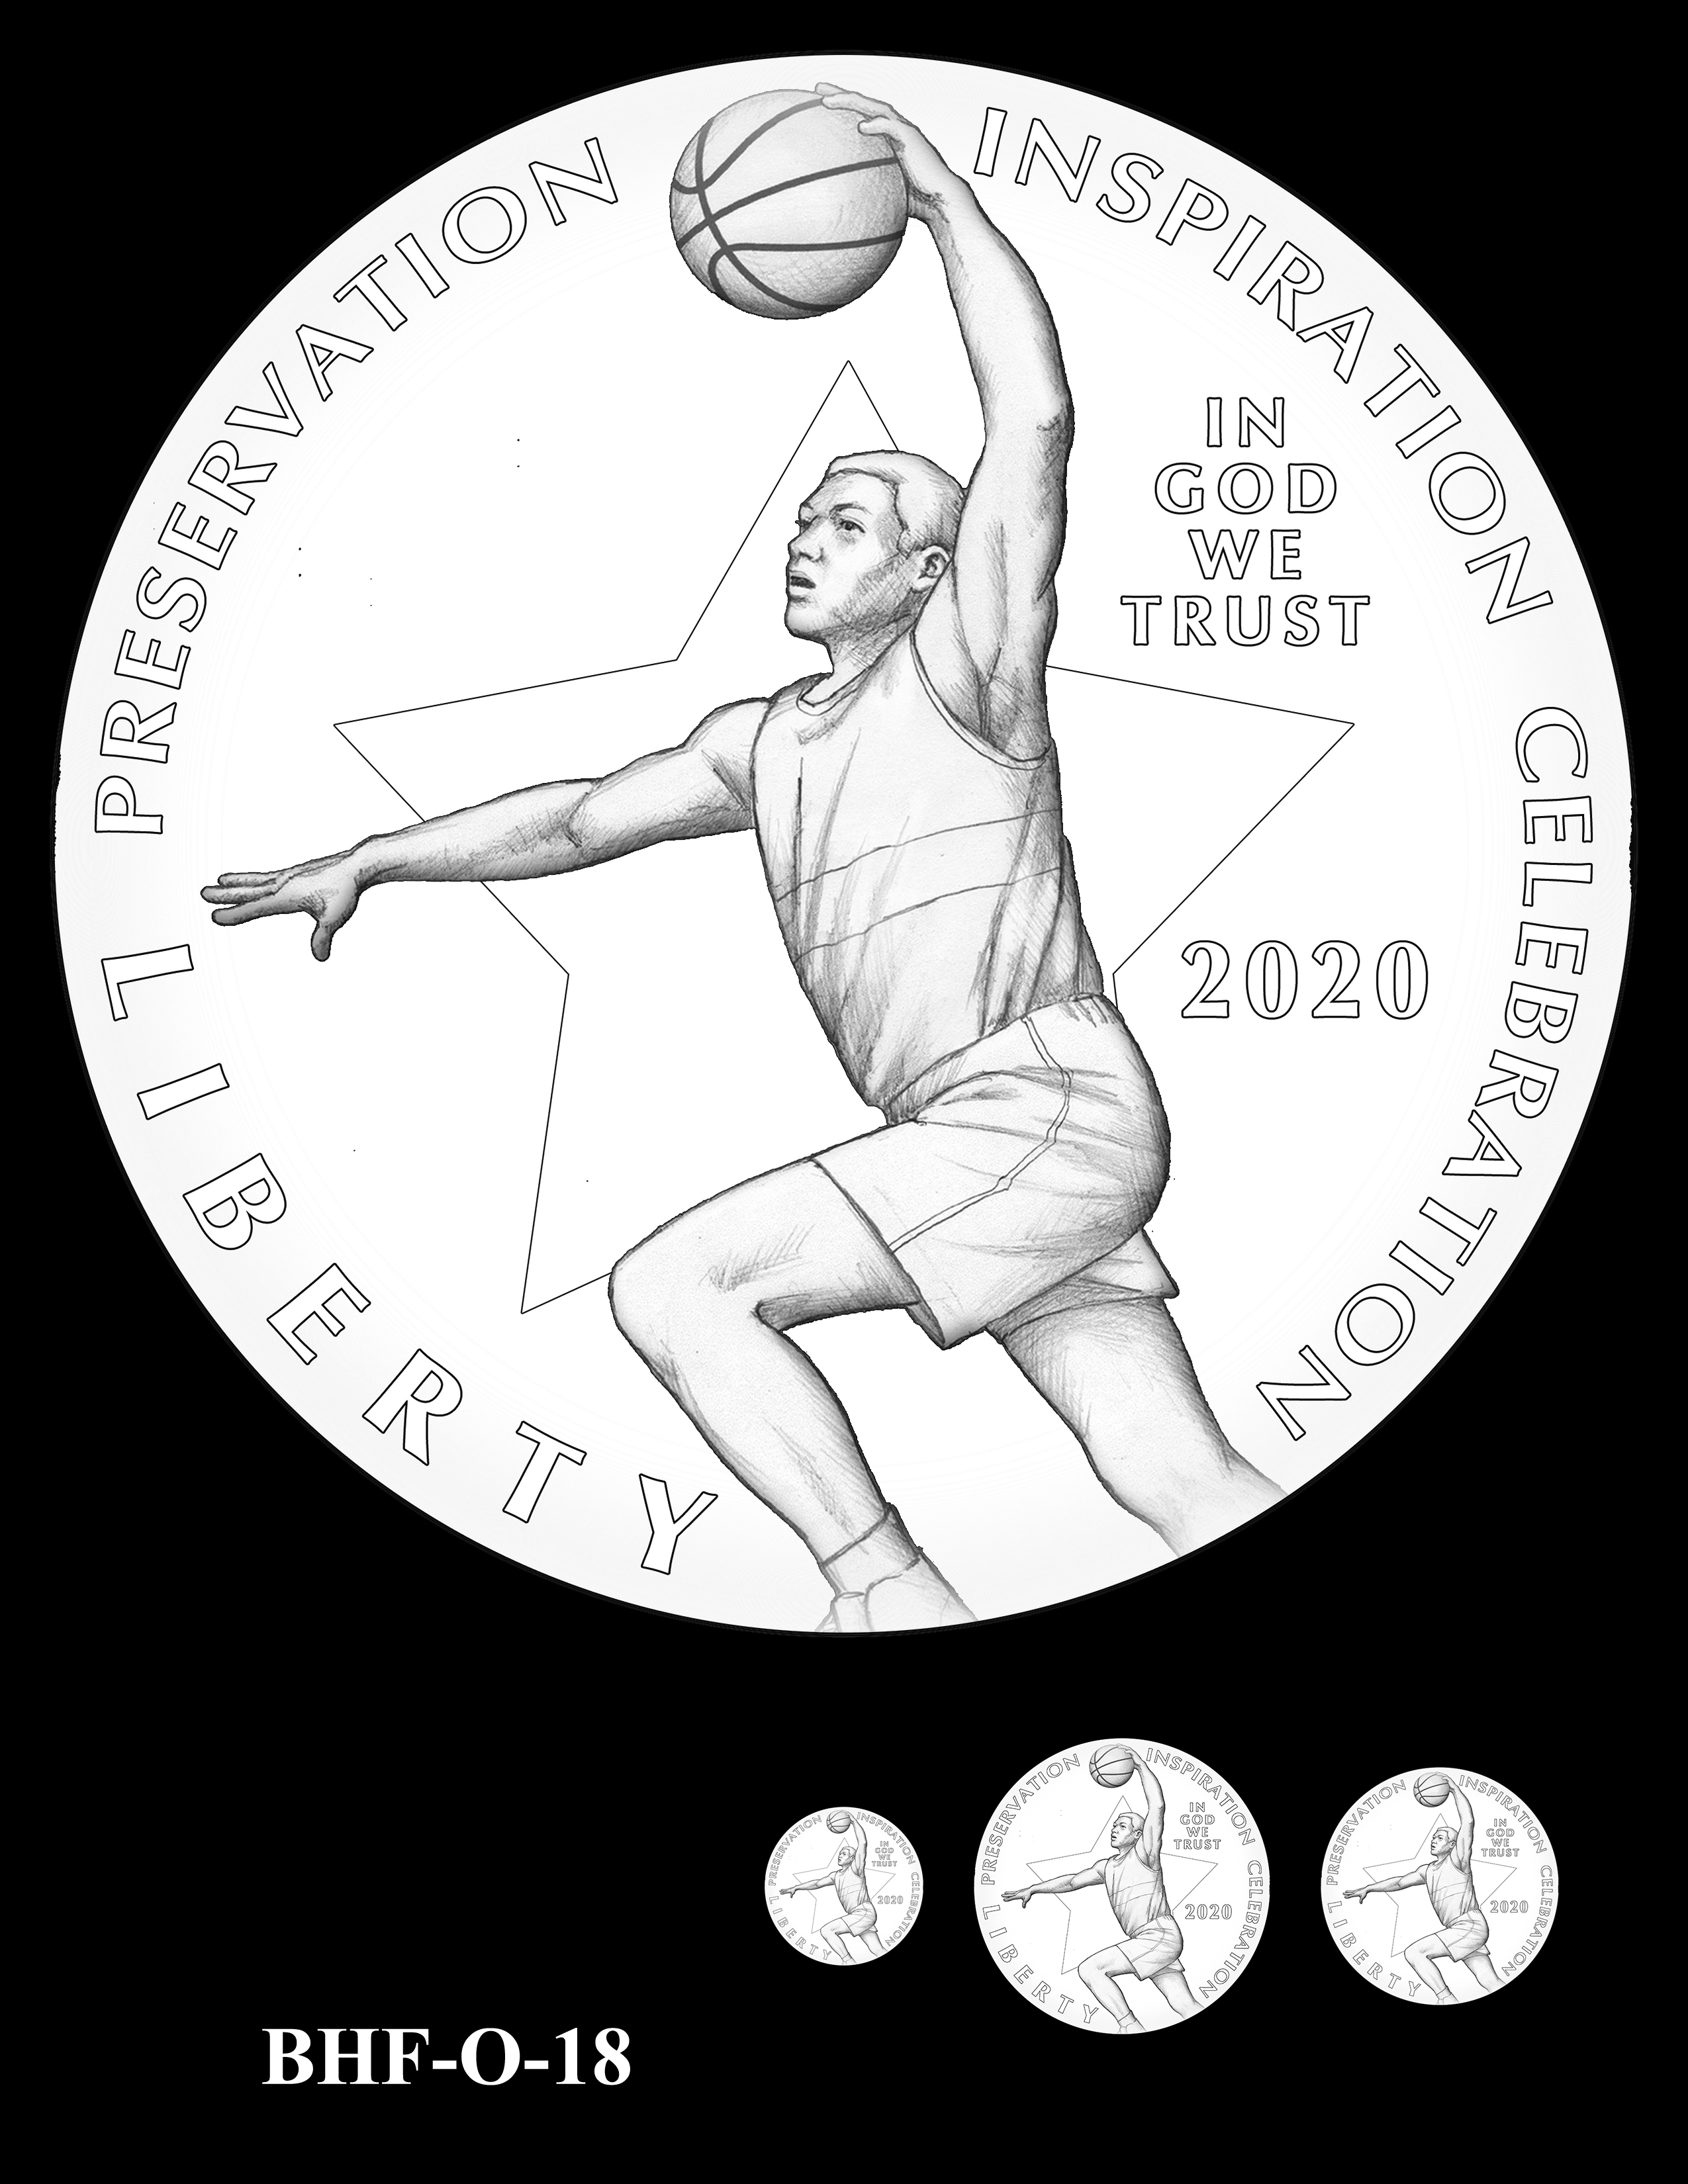 BHF-O-18 -- 2020 Basketball Hall of Fame Commemorative Coin Program - Common Obverse